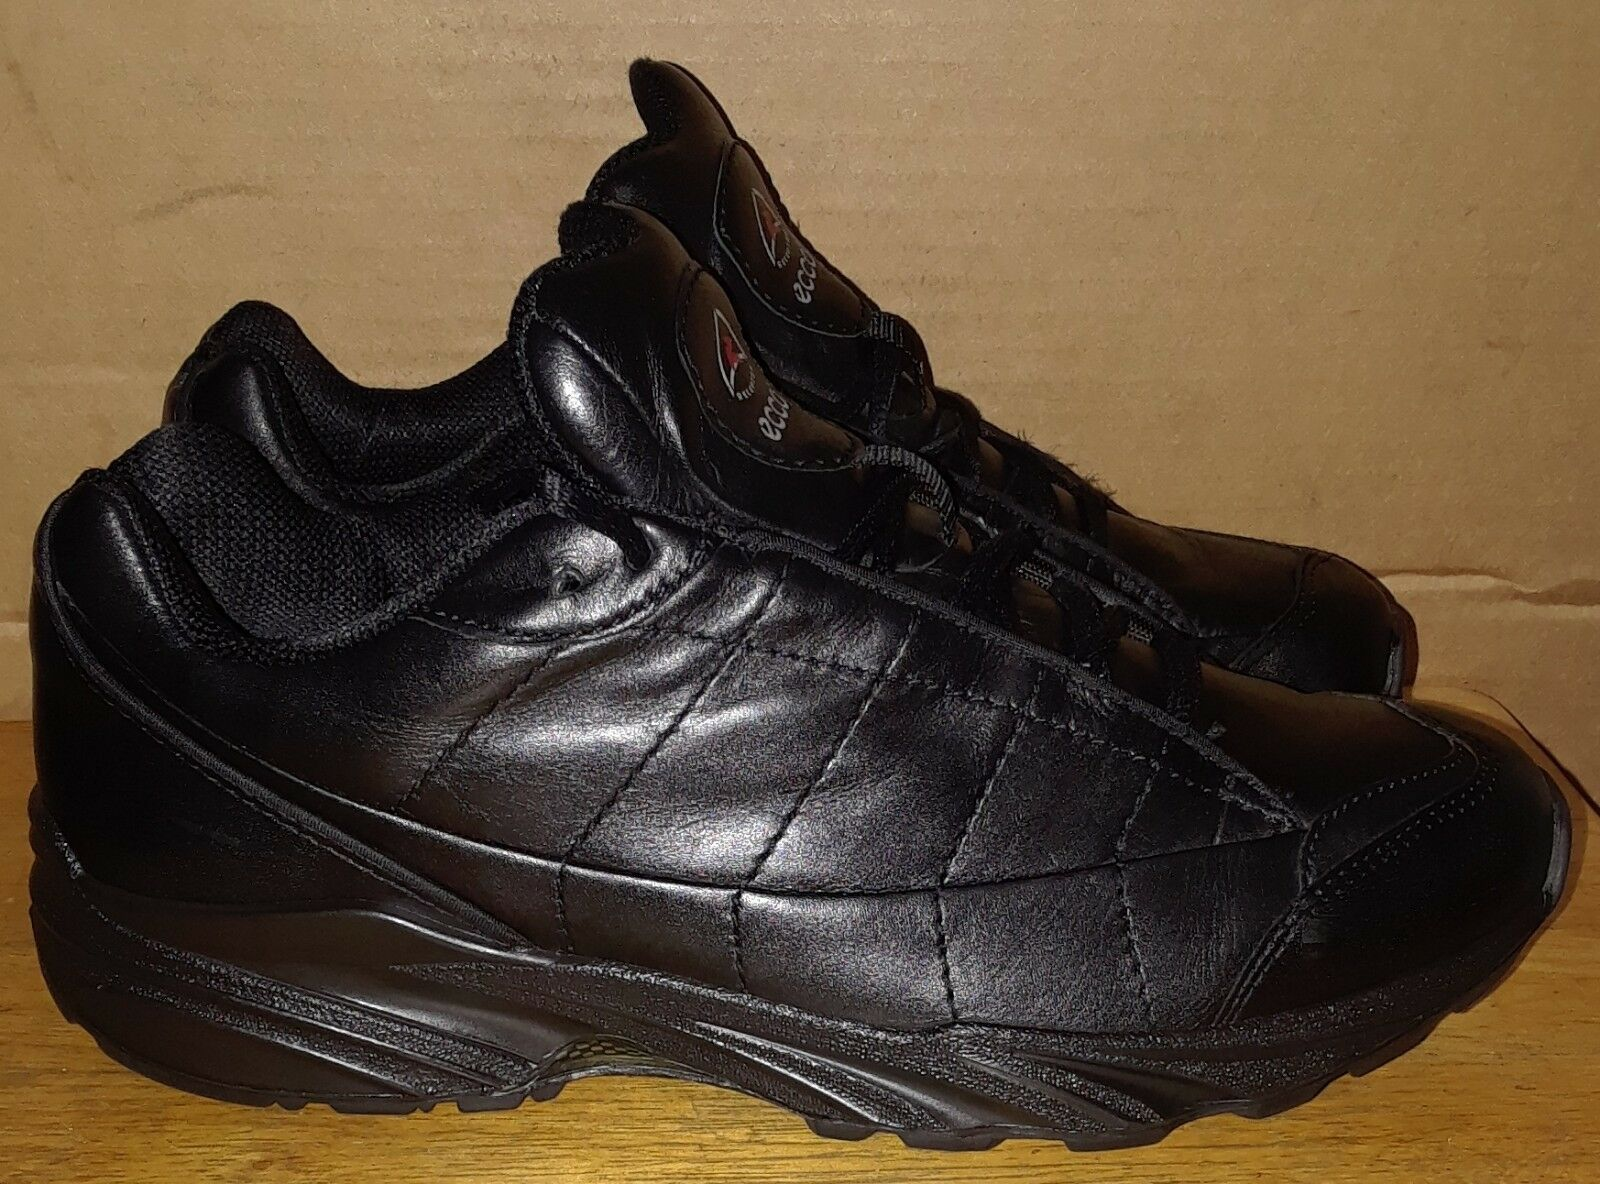 Ecco Receptor Black Leather Cambridge Men's  EU 41 US 7.5-8